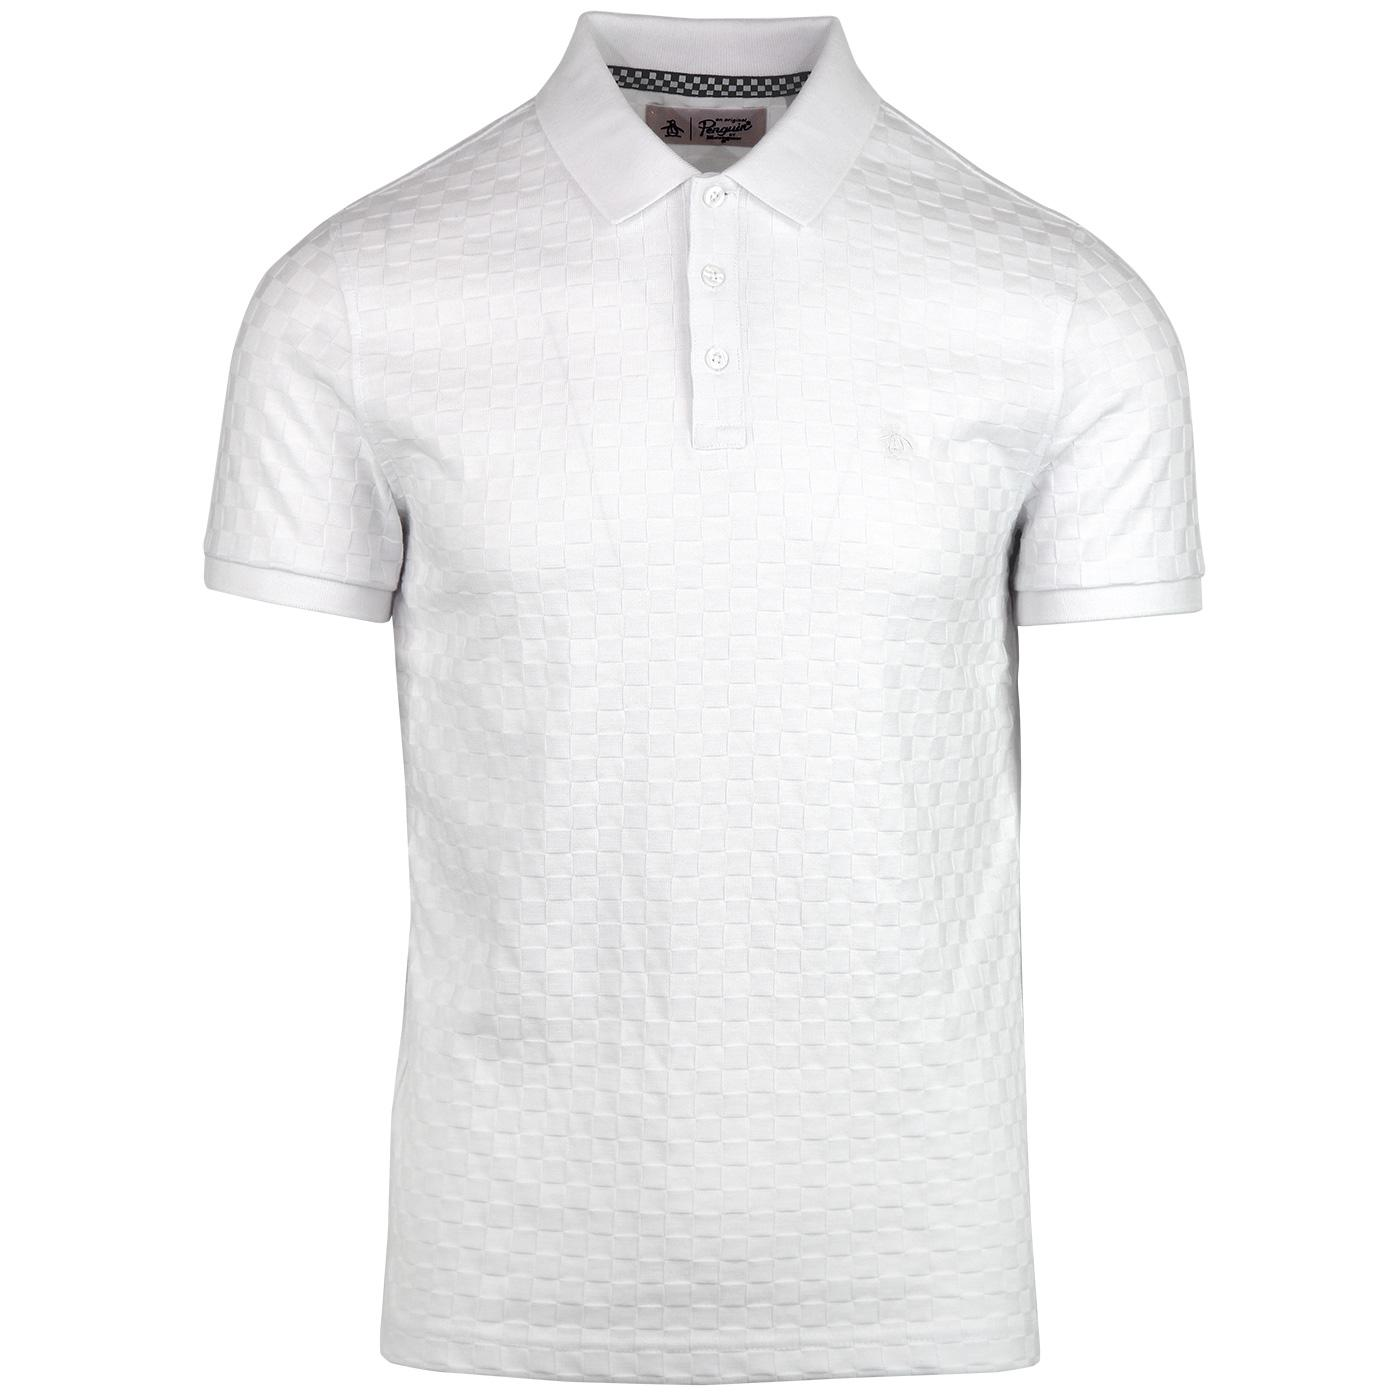 ORIGINAL PENGUIN Retro Mod Tonal Check Jersey Polo